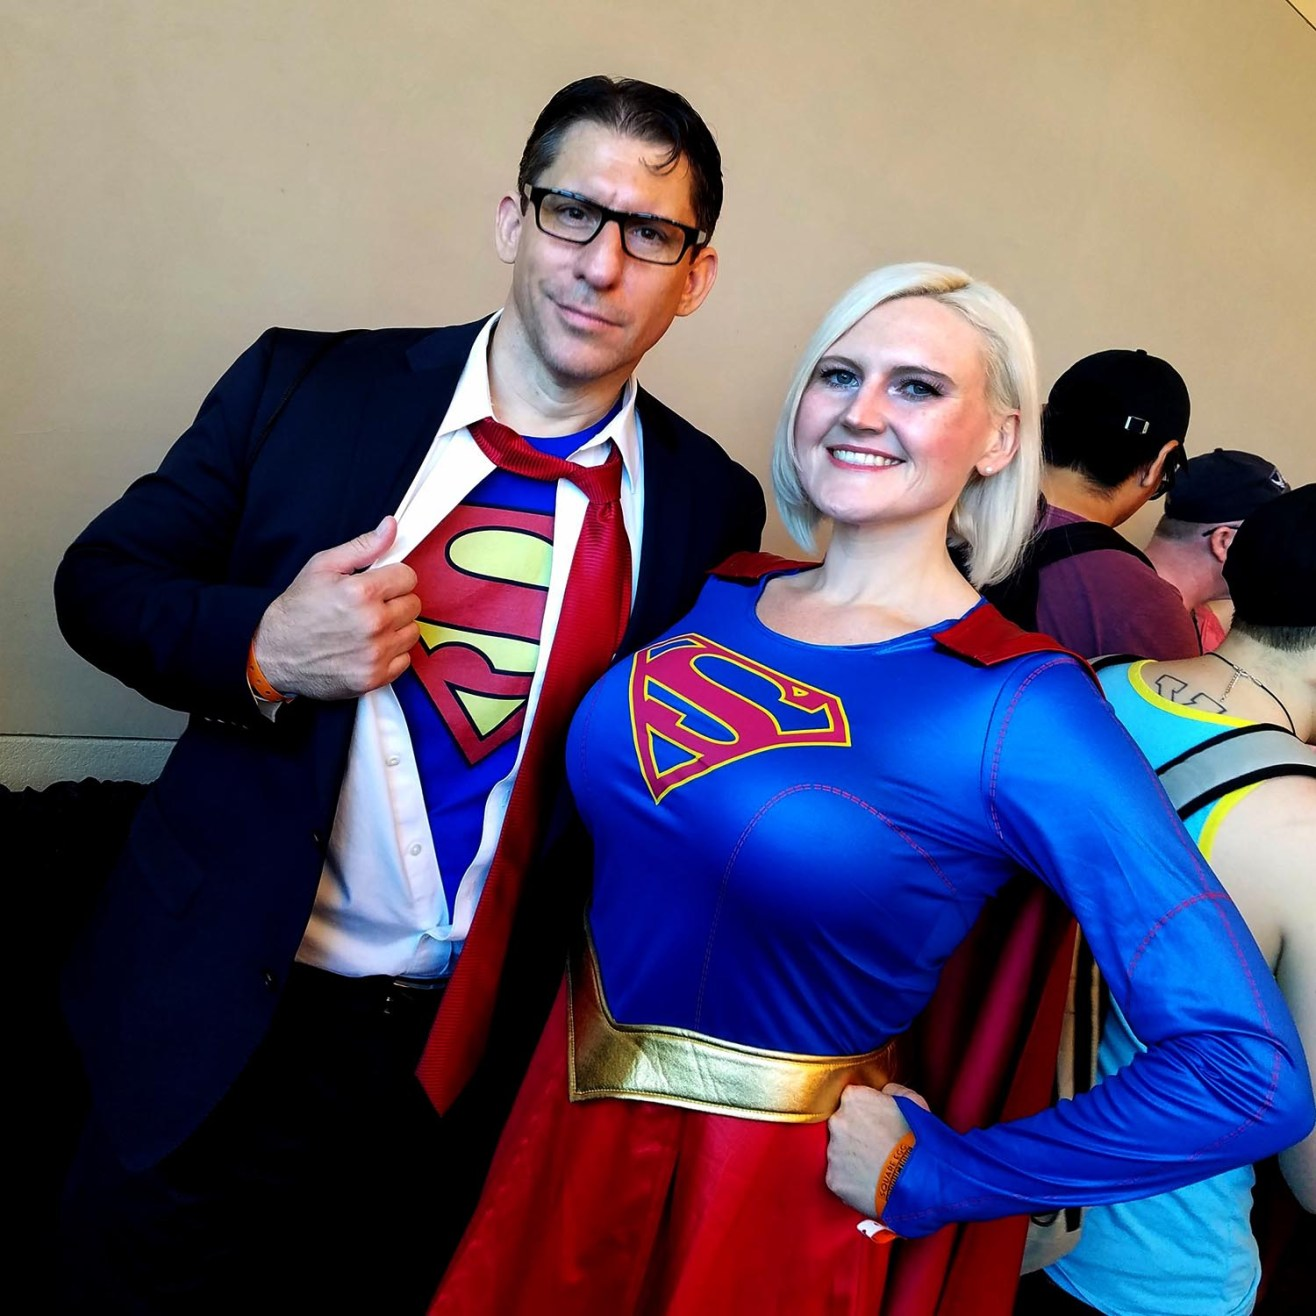 Clark Kent and Supergirl reporting for duty at Phoenix Comic Fest, Sunday, May 27, 2018, at the Phoenix Convention Center.